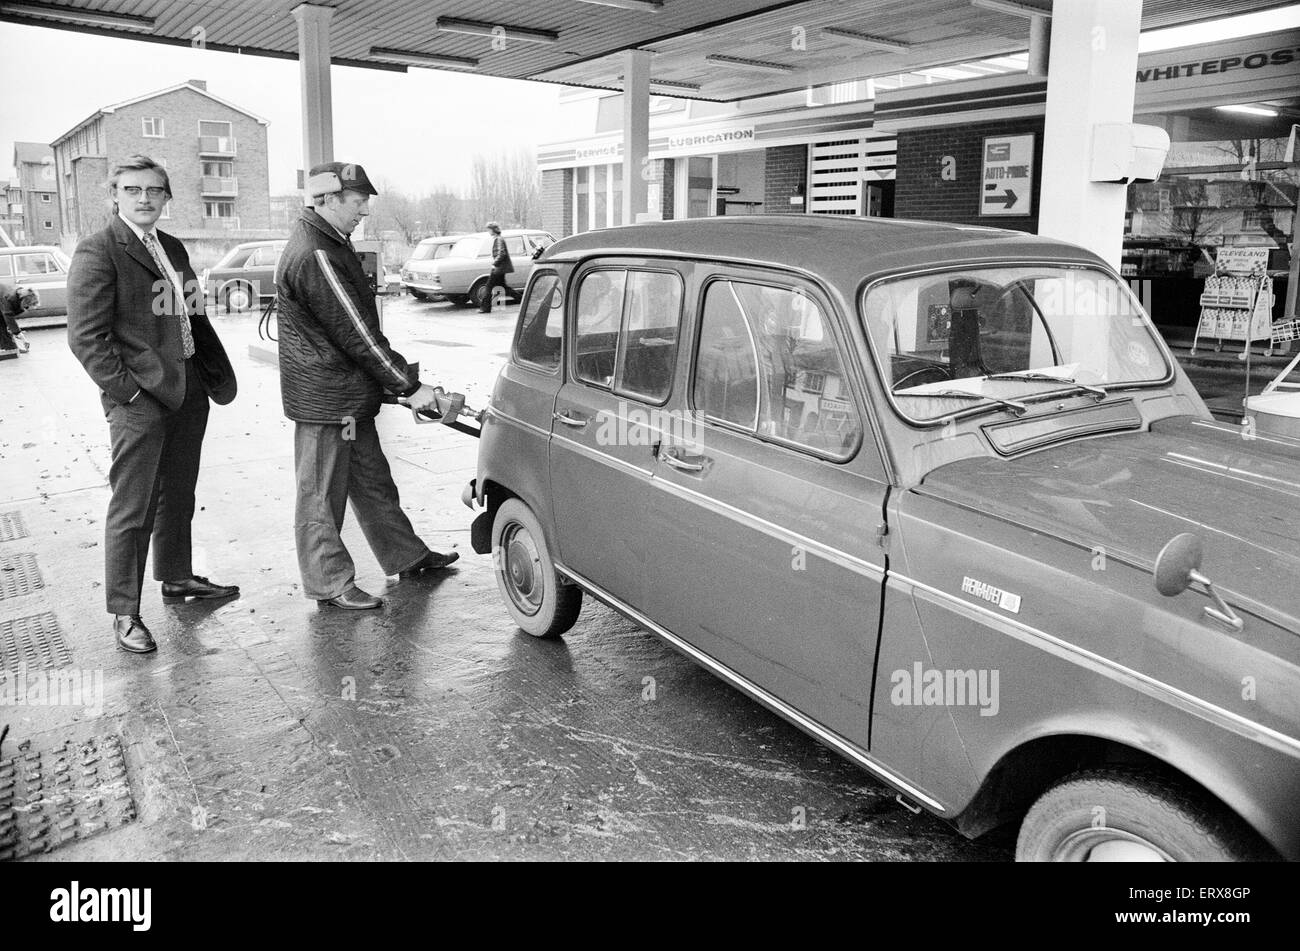 Fuel Rationing, customers limited to two gallons, Bearwood, Birmingham, Tuesday 4th December 1973. - Stock Image